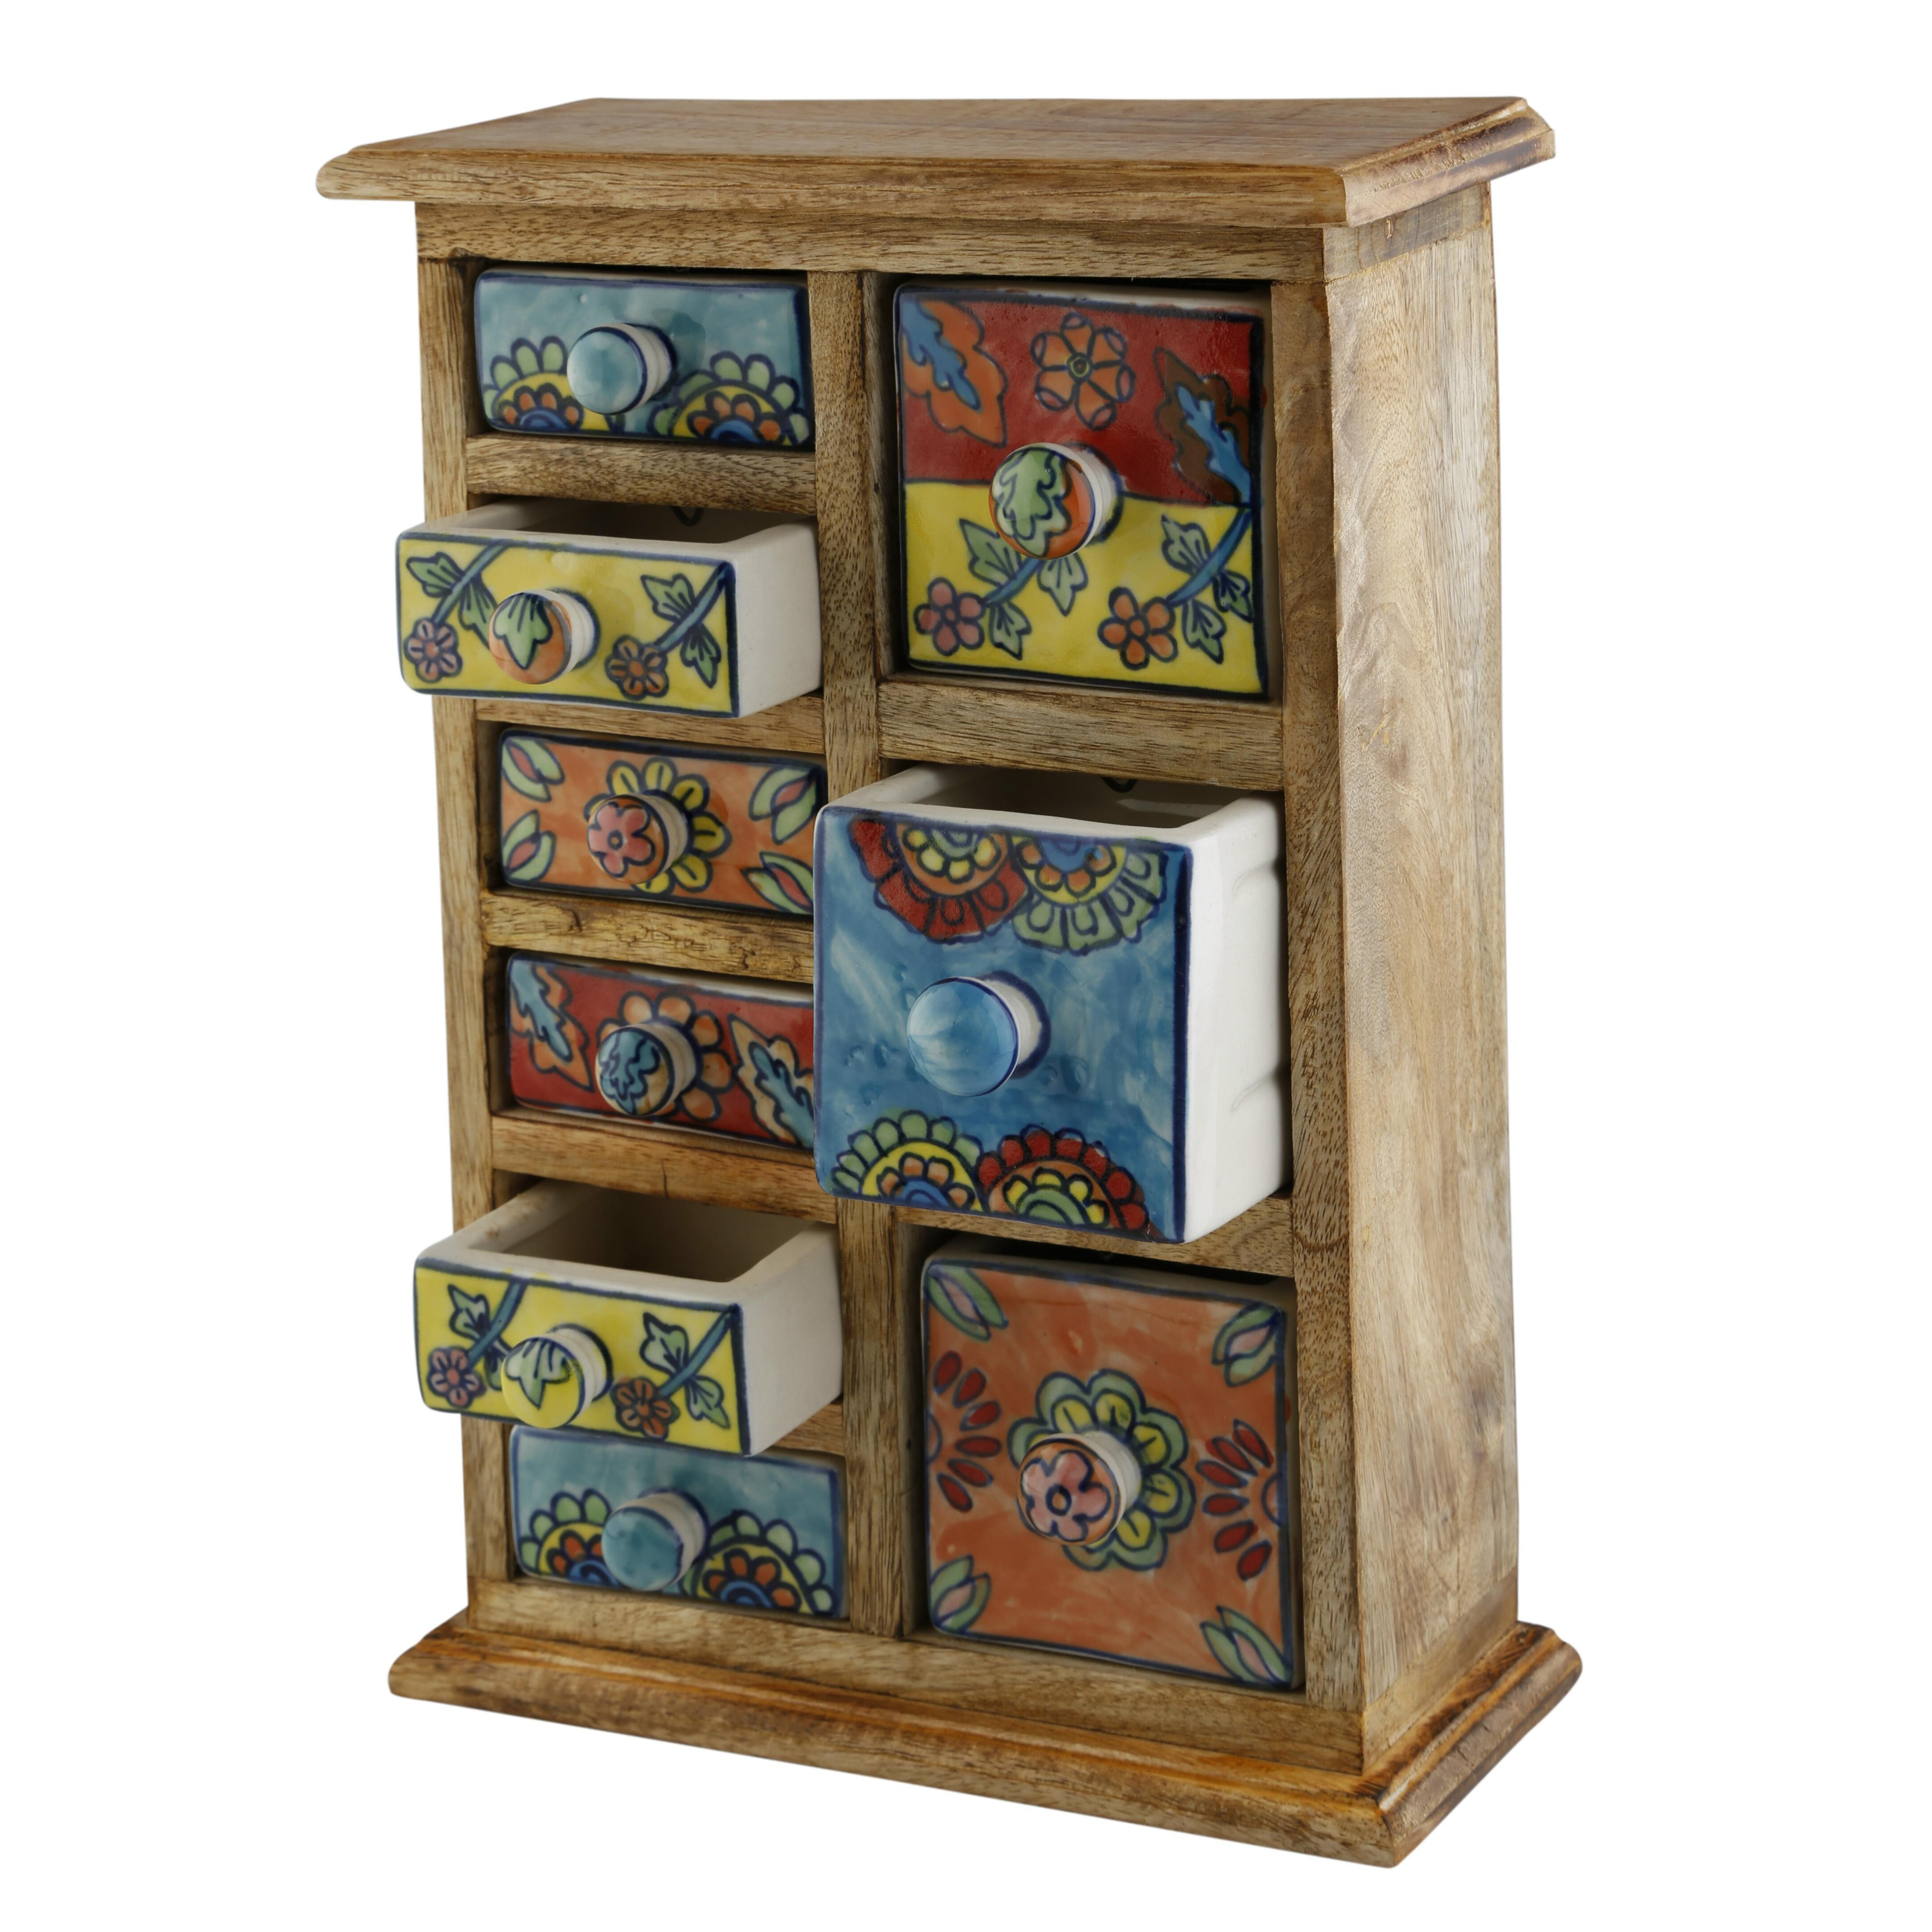 Kitchen cabinet apothecary drawers - Kindwer Curios 9 Drawer Wood Apothecary Chest Amp Reviews Wayfair Ca